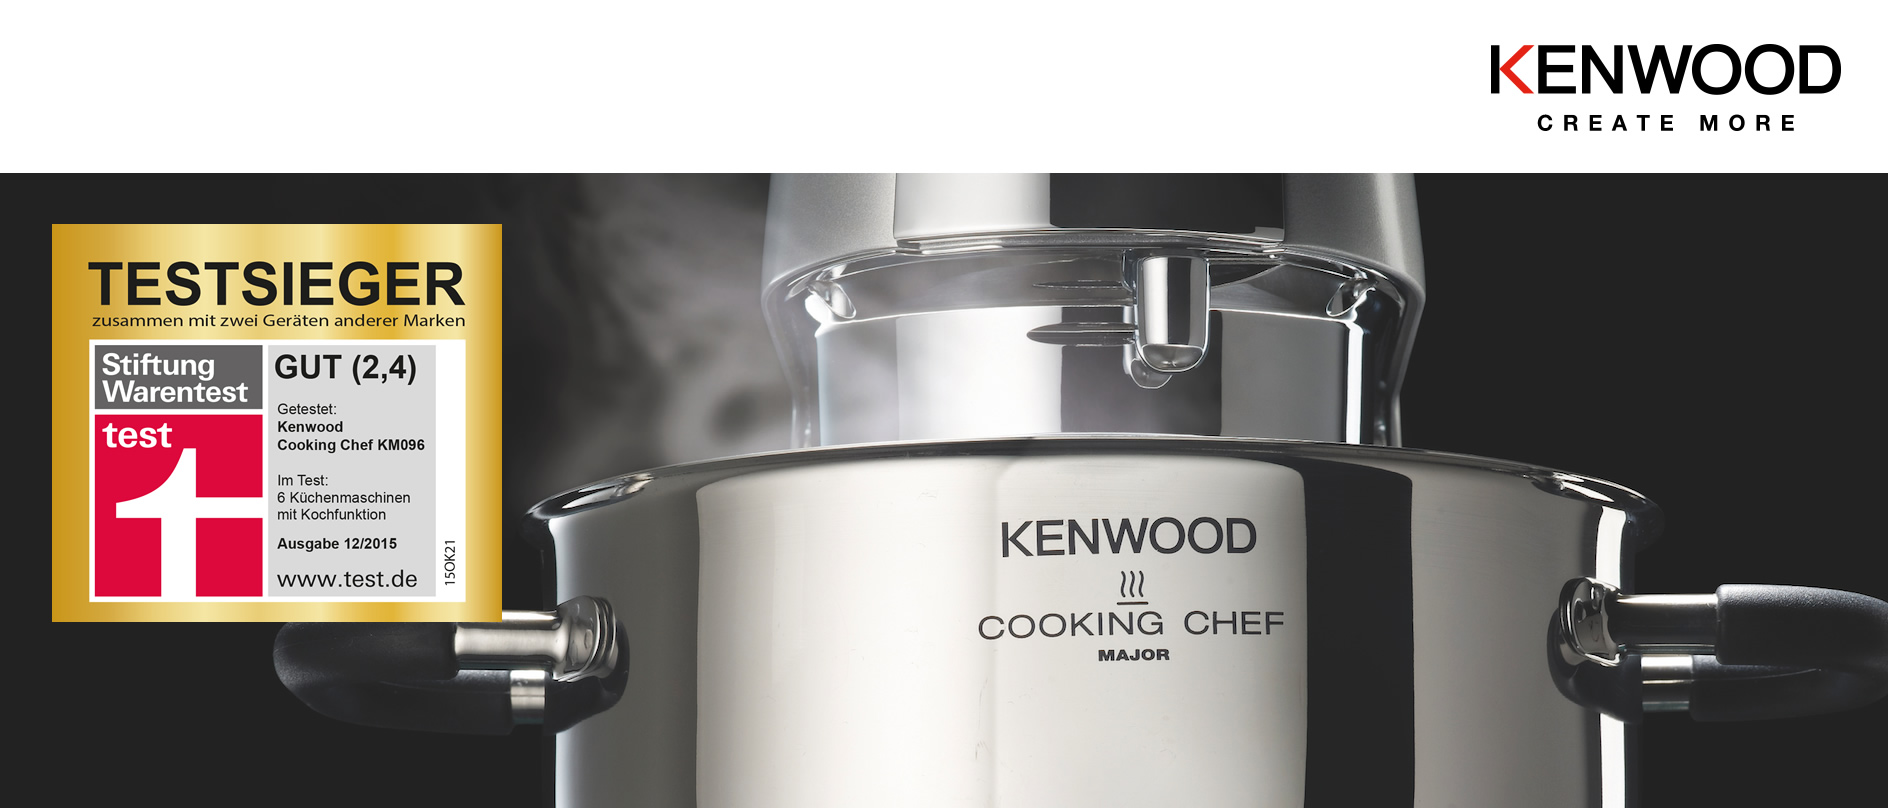 Kenwood - Cooking Chef